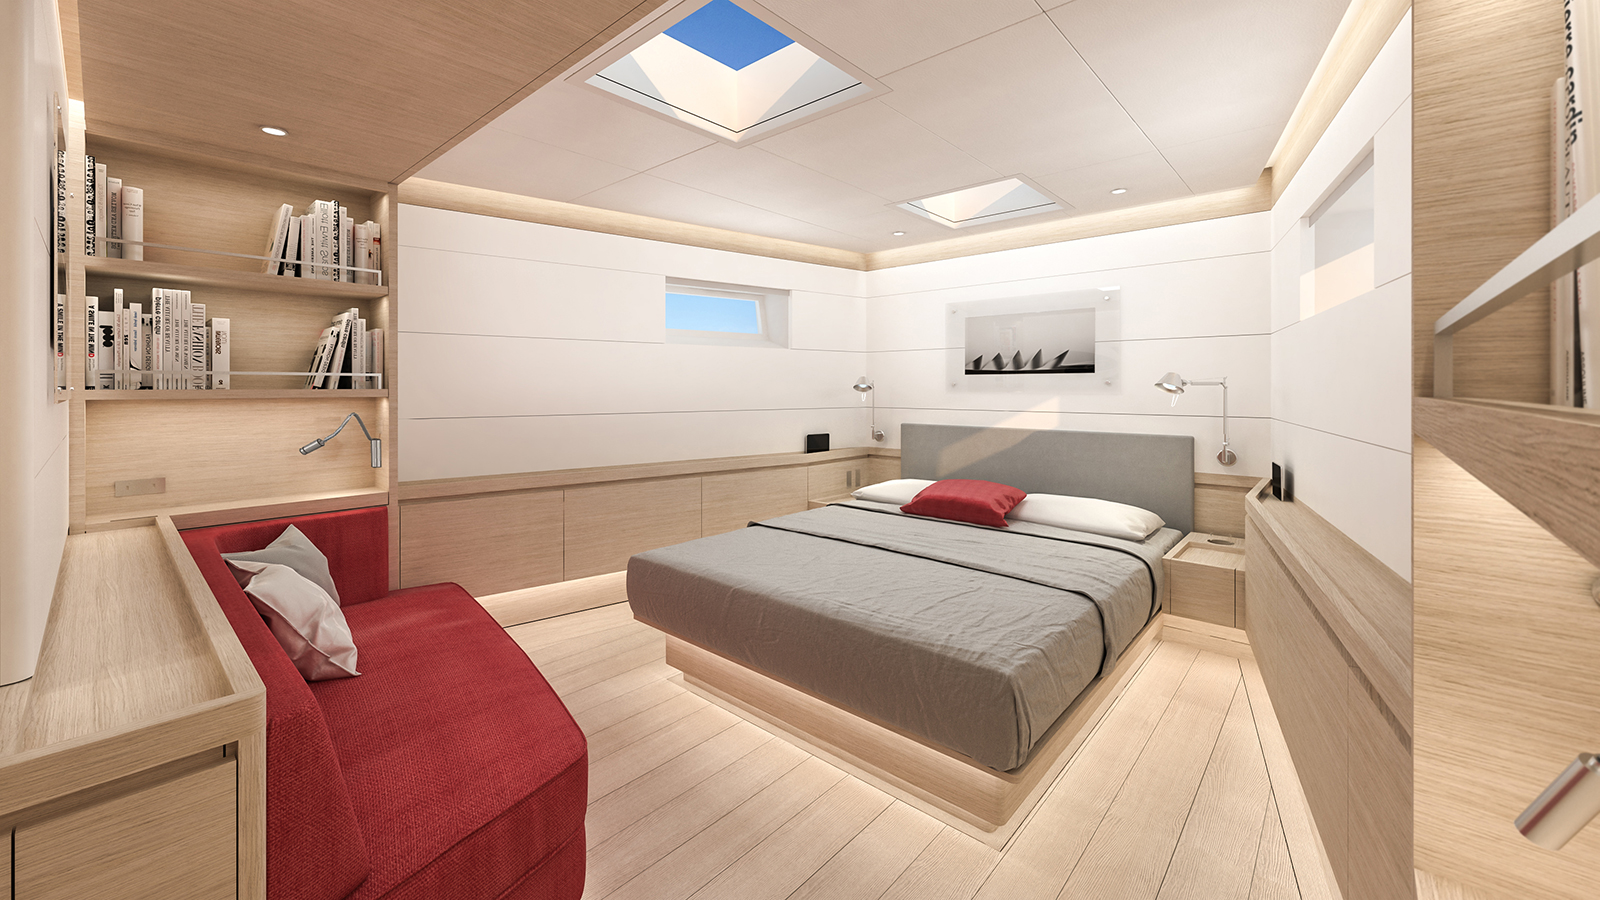 nauta-yachts-design-for-the-master-suite-of-the-pendennis-refit-project-g2